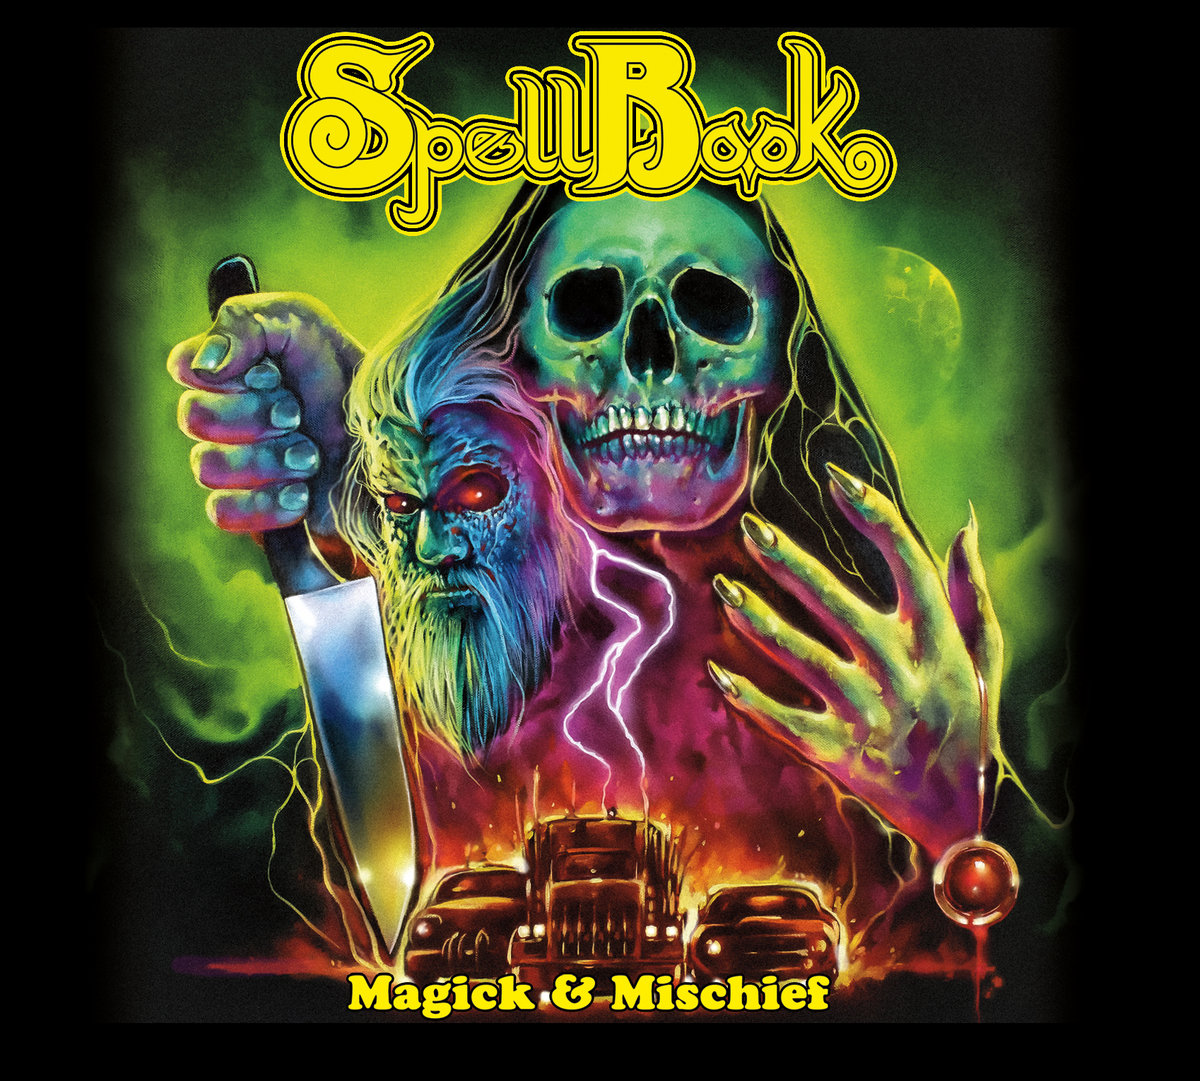 SpellBook Magick and Mischief